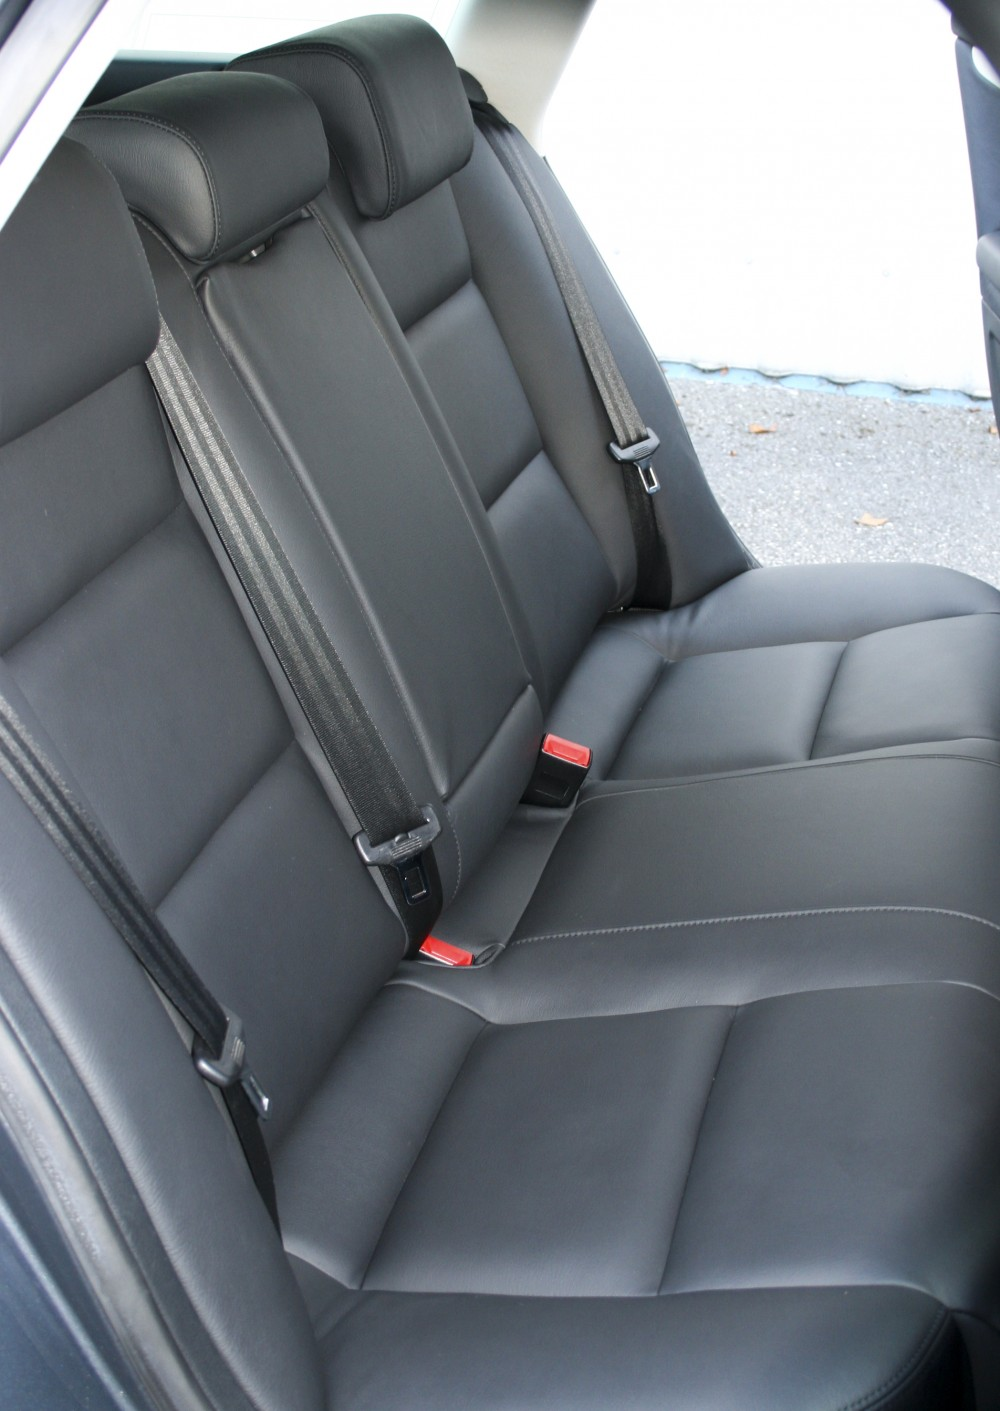 Audi A4 Leather Seat Covers 2014 Audi A6 Interior Back Www